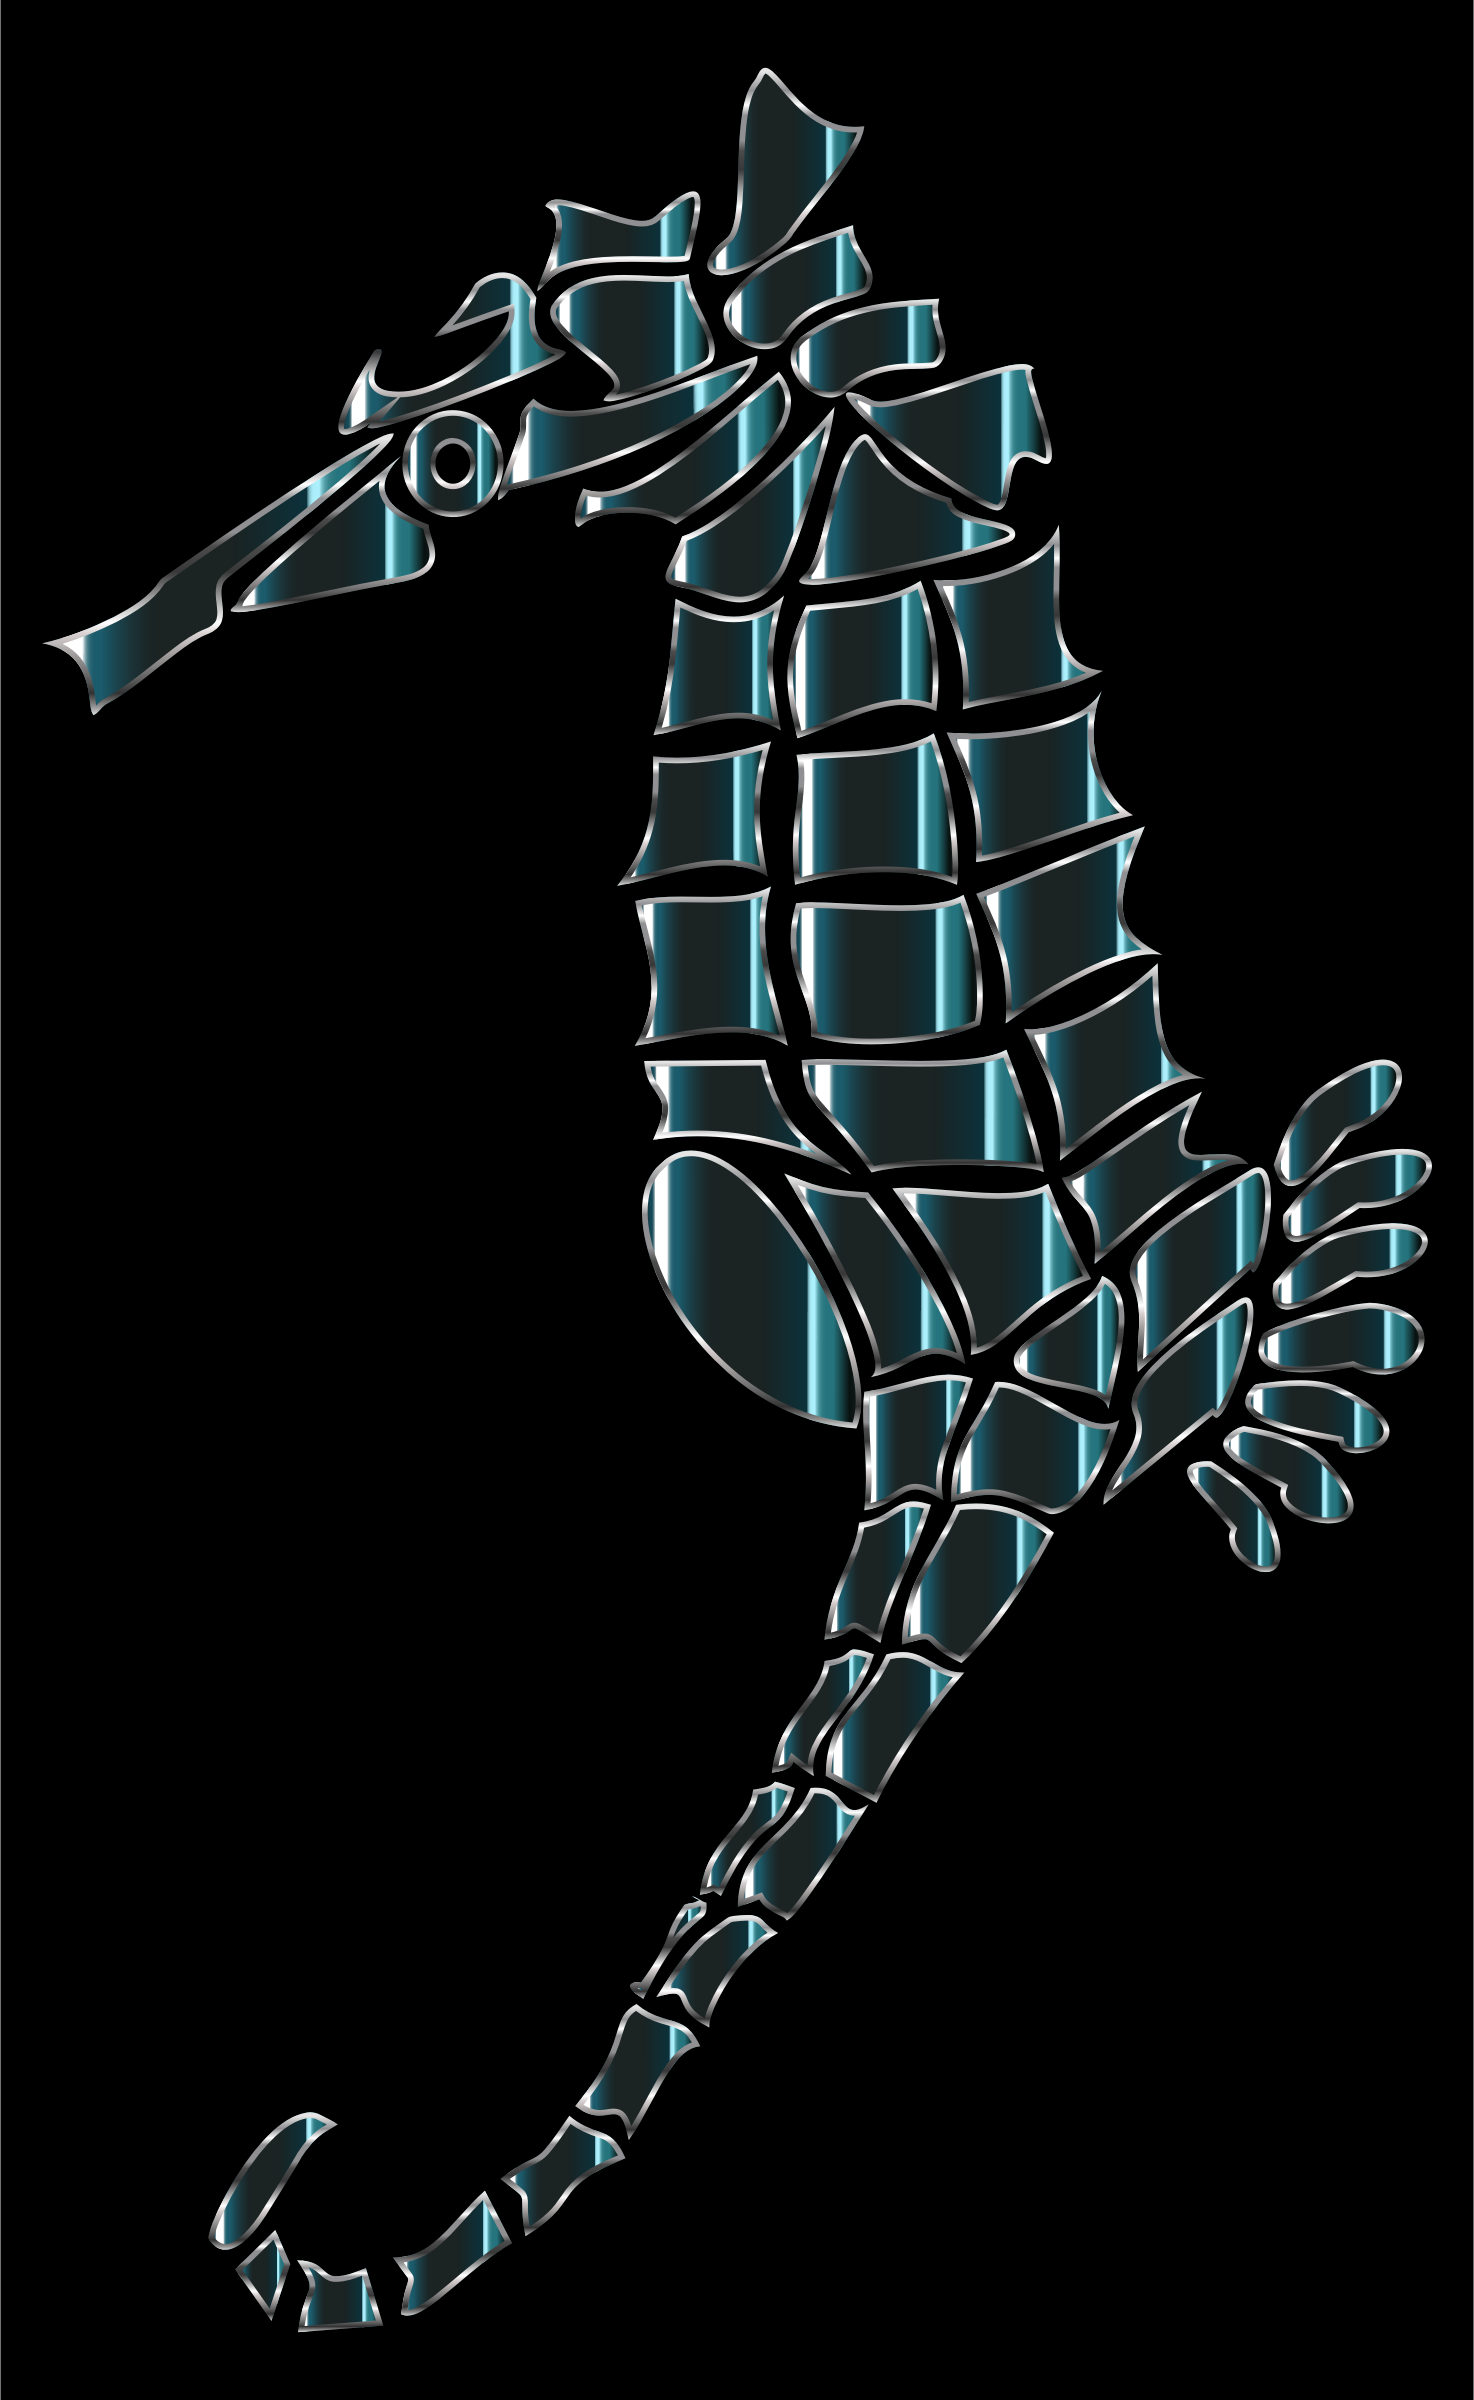 Bioluminescent Stylized Seahorse Silhouette by GDJ